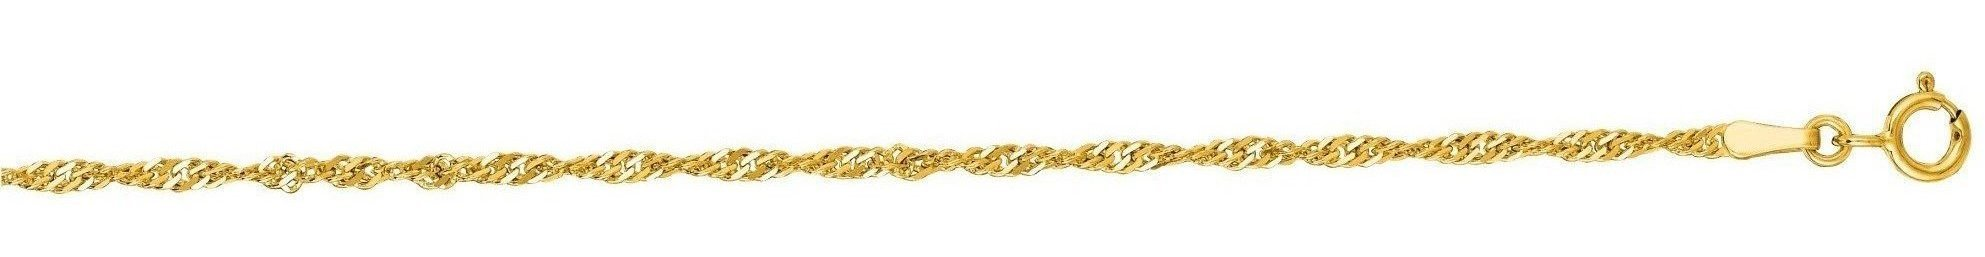 "7"" 14K Yellow Gold 1.7mm (0.07"") Diamond Cut Singapore Chain w/ Spring Ring Clasp"